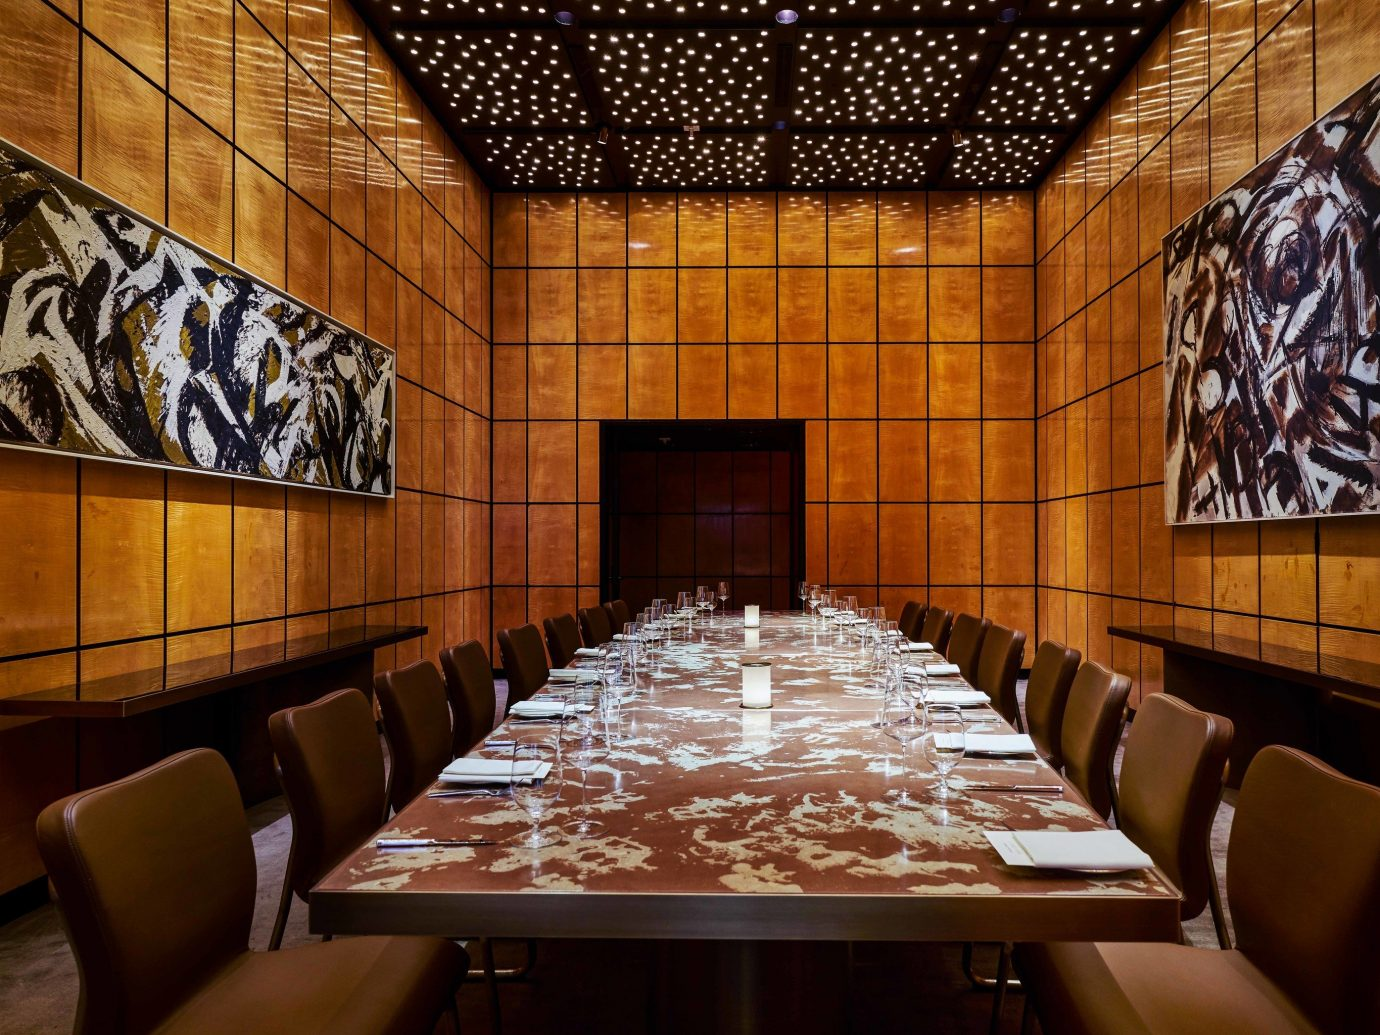 Food + Drink indoor table room interior design restaurant ceiling Lobby conference hall decorated dining room